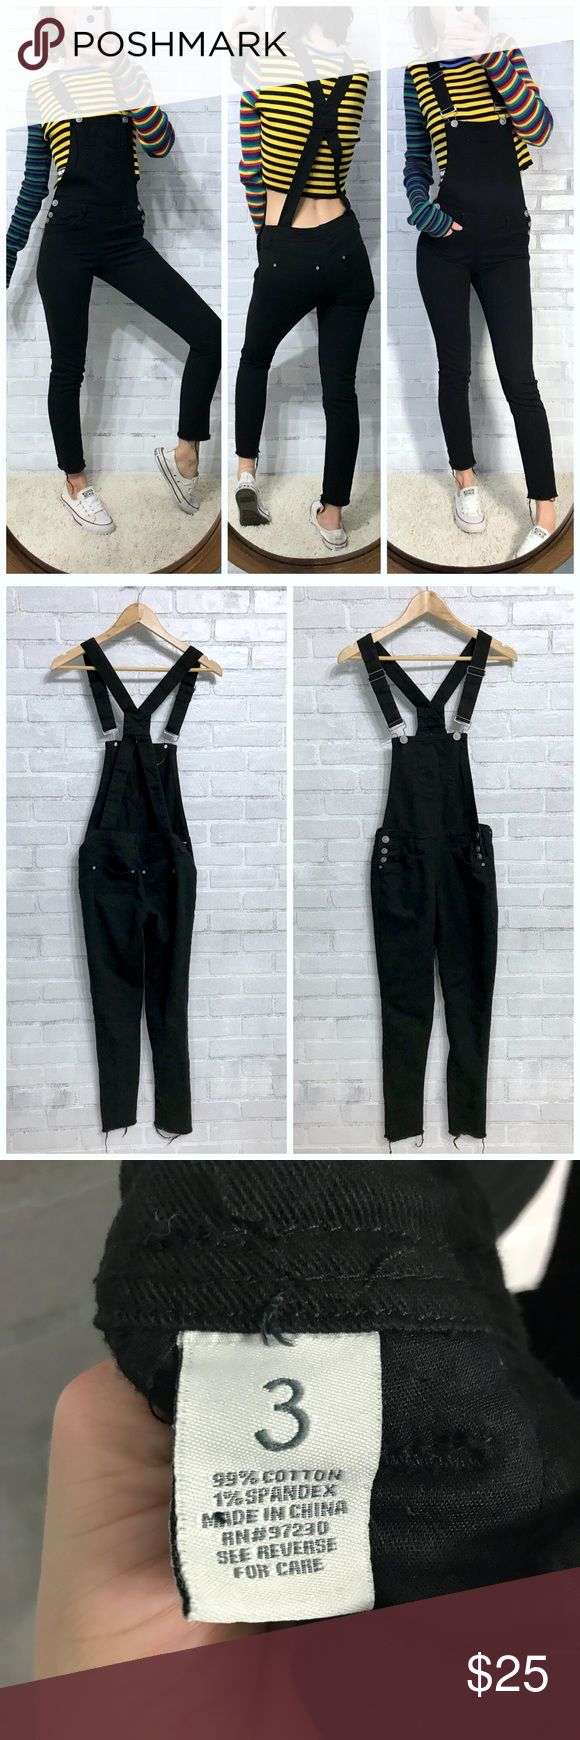 Black skinny jean denim overalls Never worn just cut the hem & washed once So so cute! Sad they are too small for me Best fit for XXS/00/23/24 not very stretchy Similar to Brandy Melville Uma overalls  For reference; I am 32/25/34 & 115 Lbs  Bundle for 10% off. No trades or holds. Ships the same or next day from a smoke free, cat friendly home in California! ❤️ Almost Famous Jeans Overalls